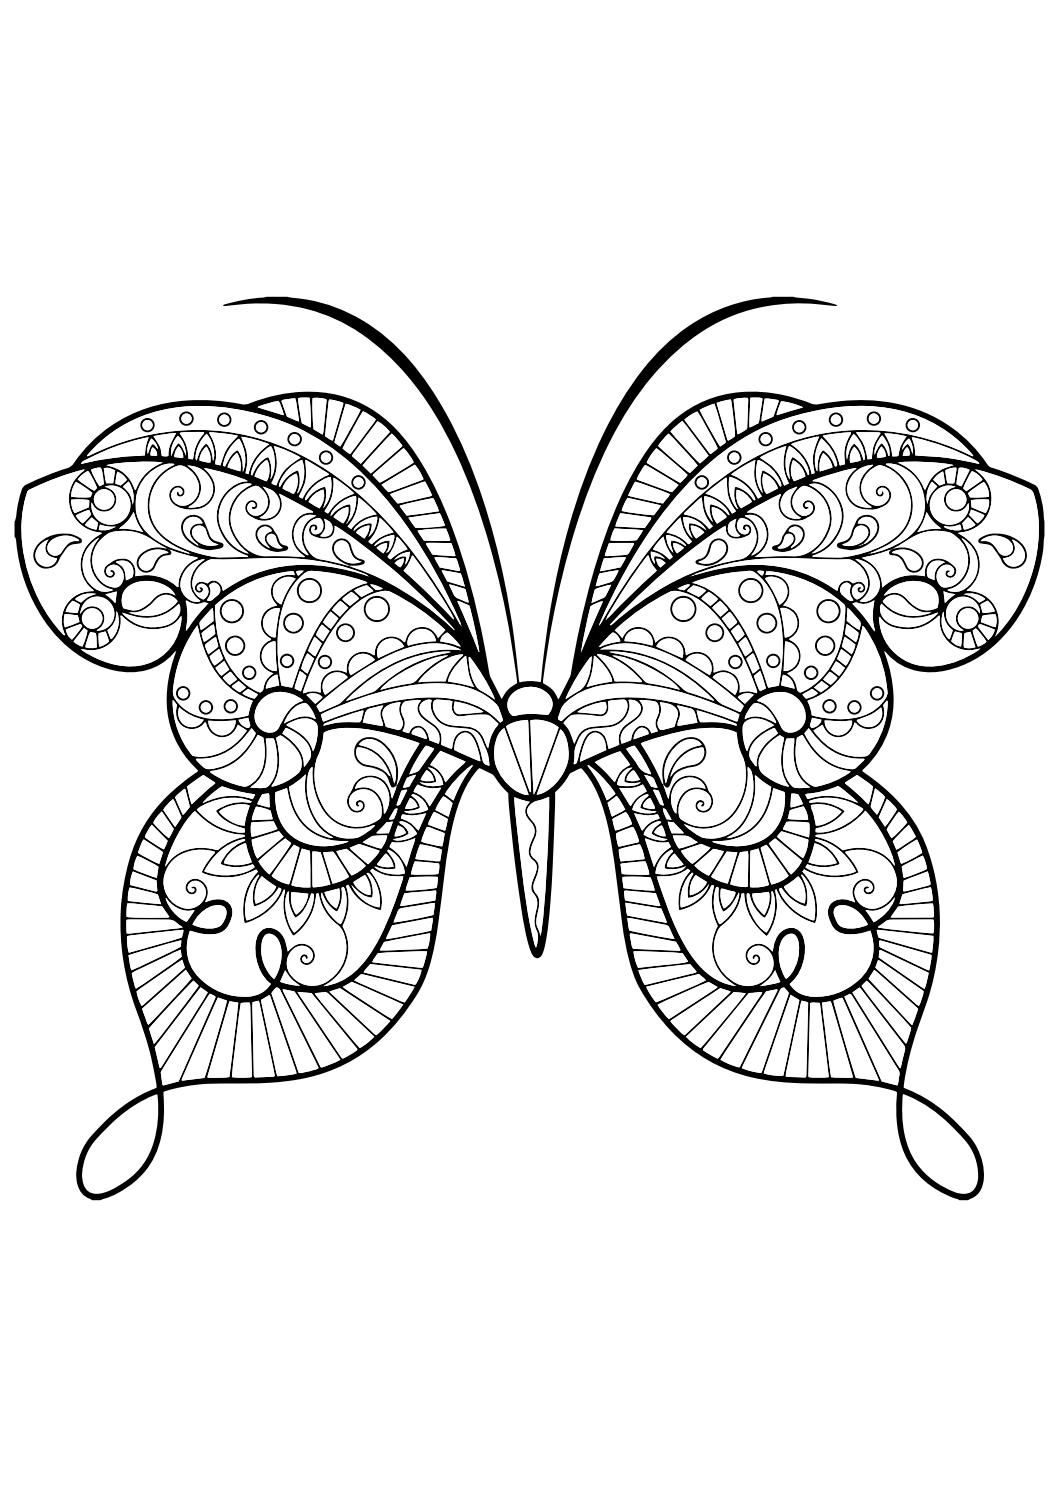 Luxury Butterfly Coloring Book 51 Adult Butterfly Coloring